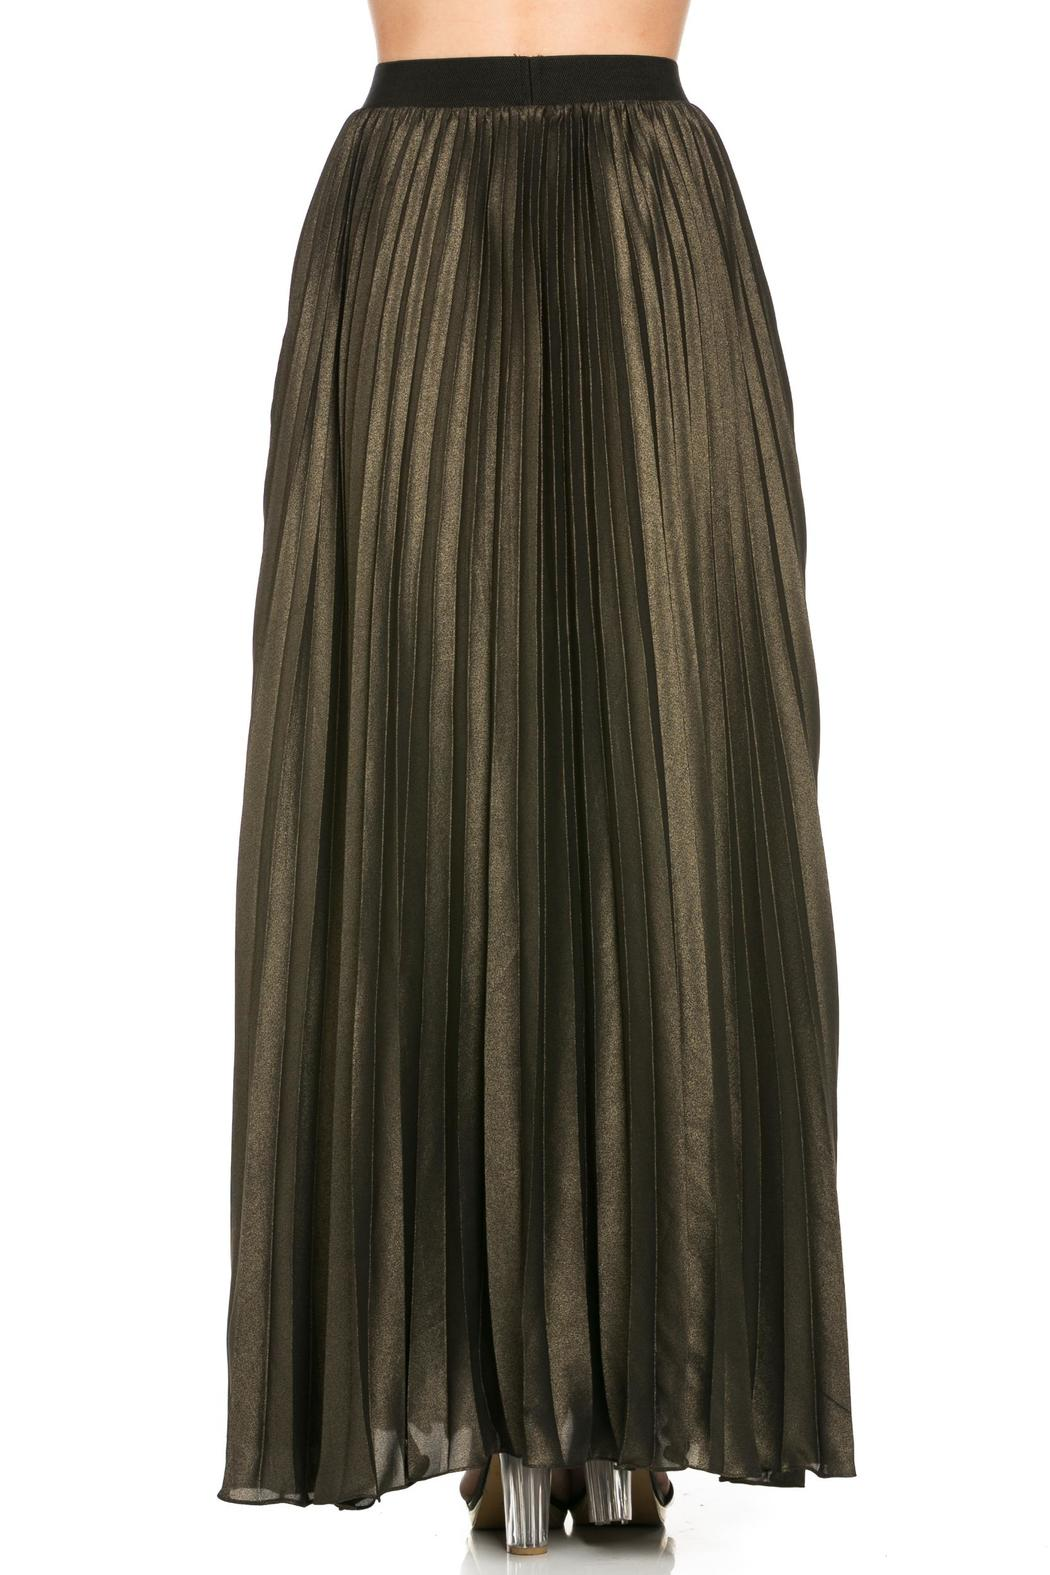 MHGS Gold Pleated Maxi - Side Cropped Image